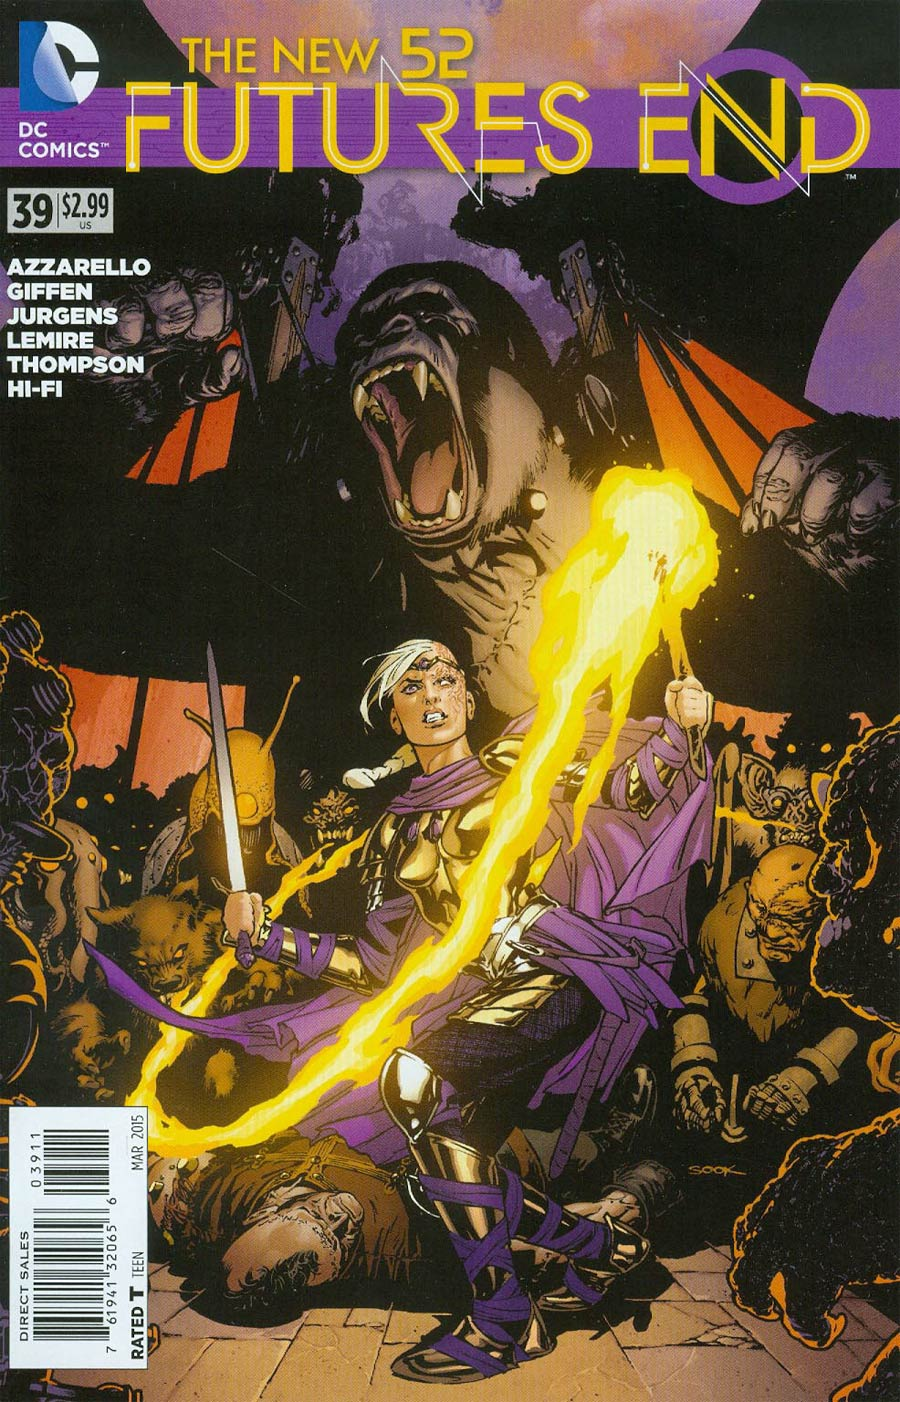 New 52 Futures End #39